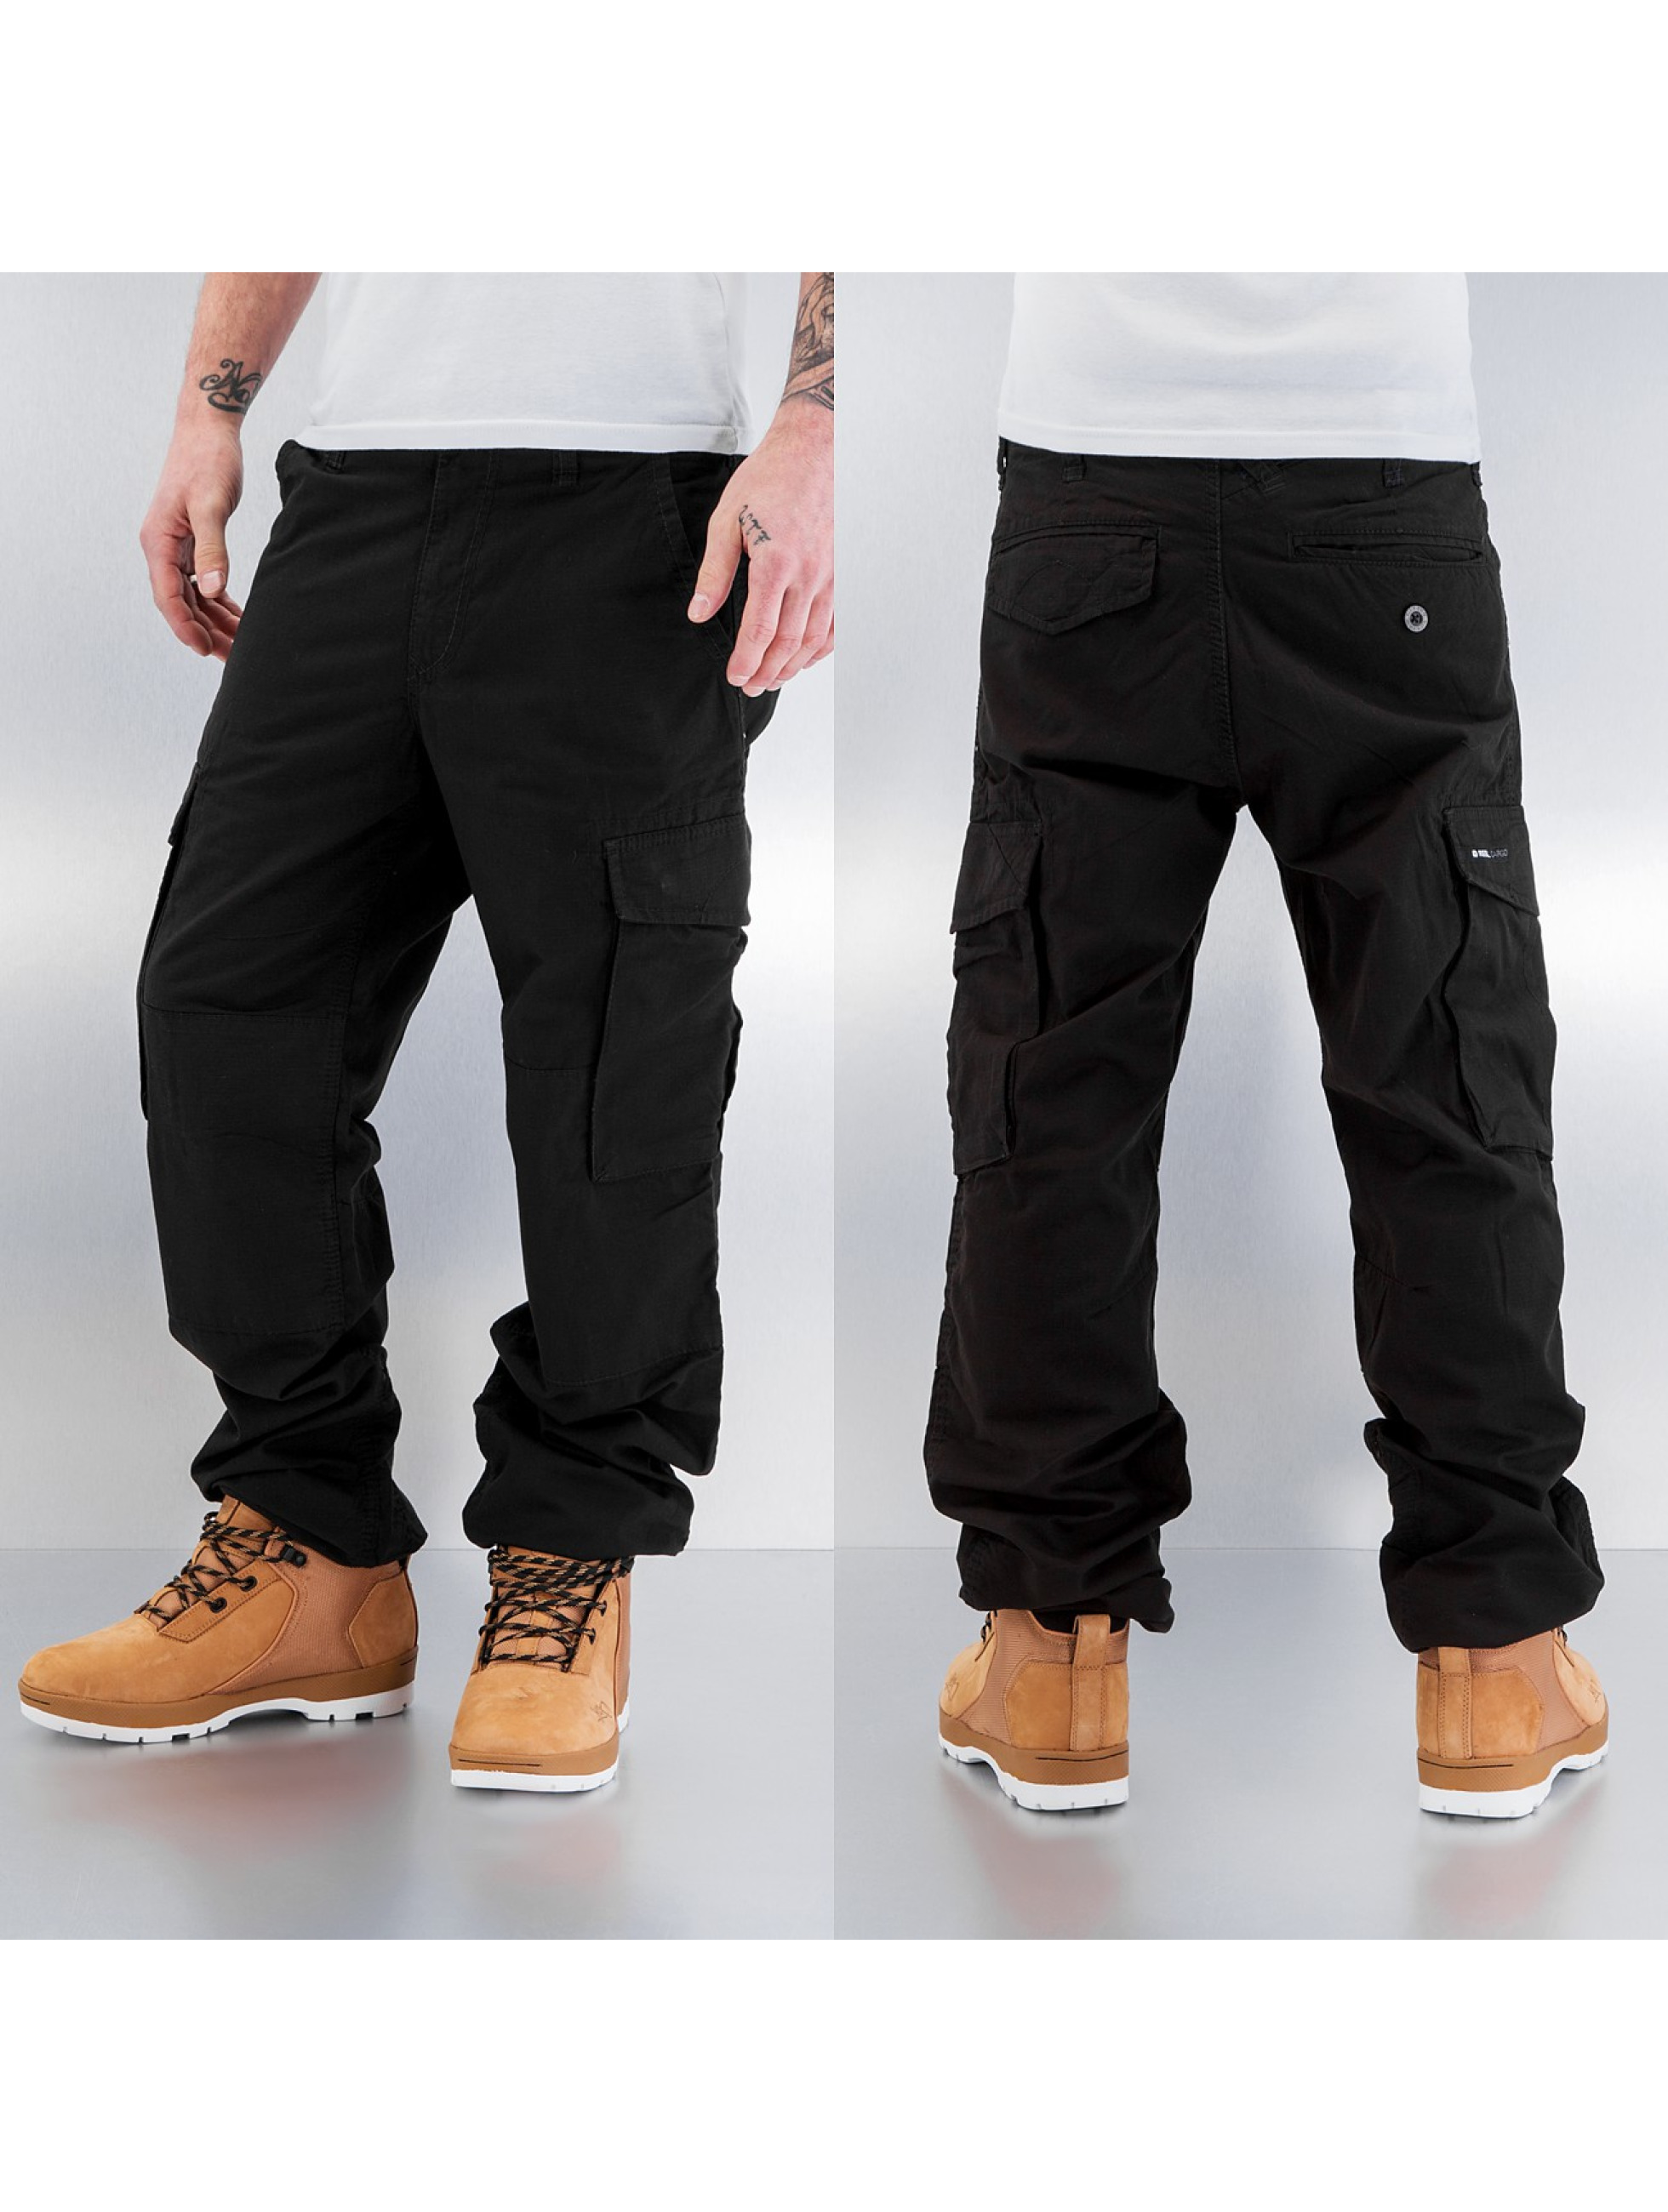 reell jeans ripstop noir homme pantalon cargo reell jeans acheter pas cher pantalon 179919. Black Bedroom Furniture Sets. Home Design Ideas